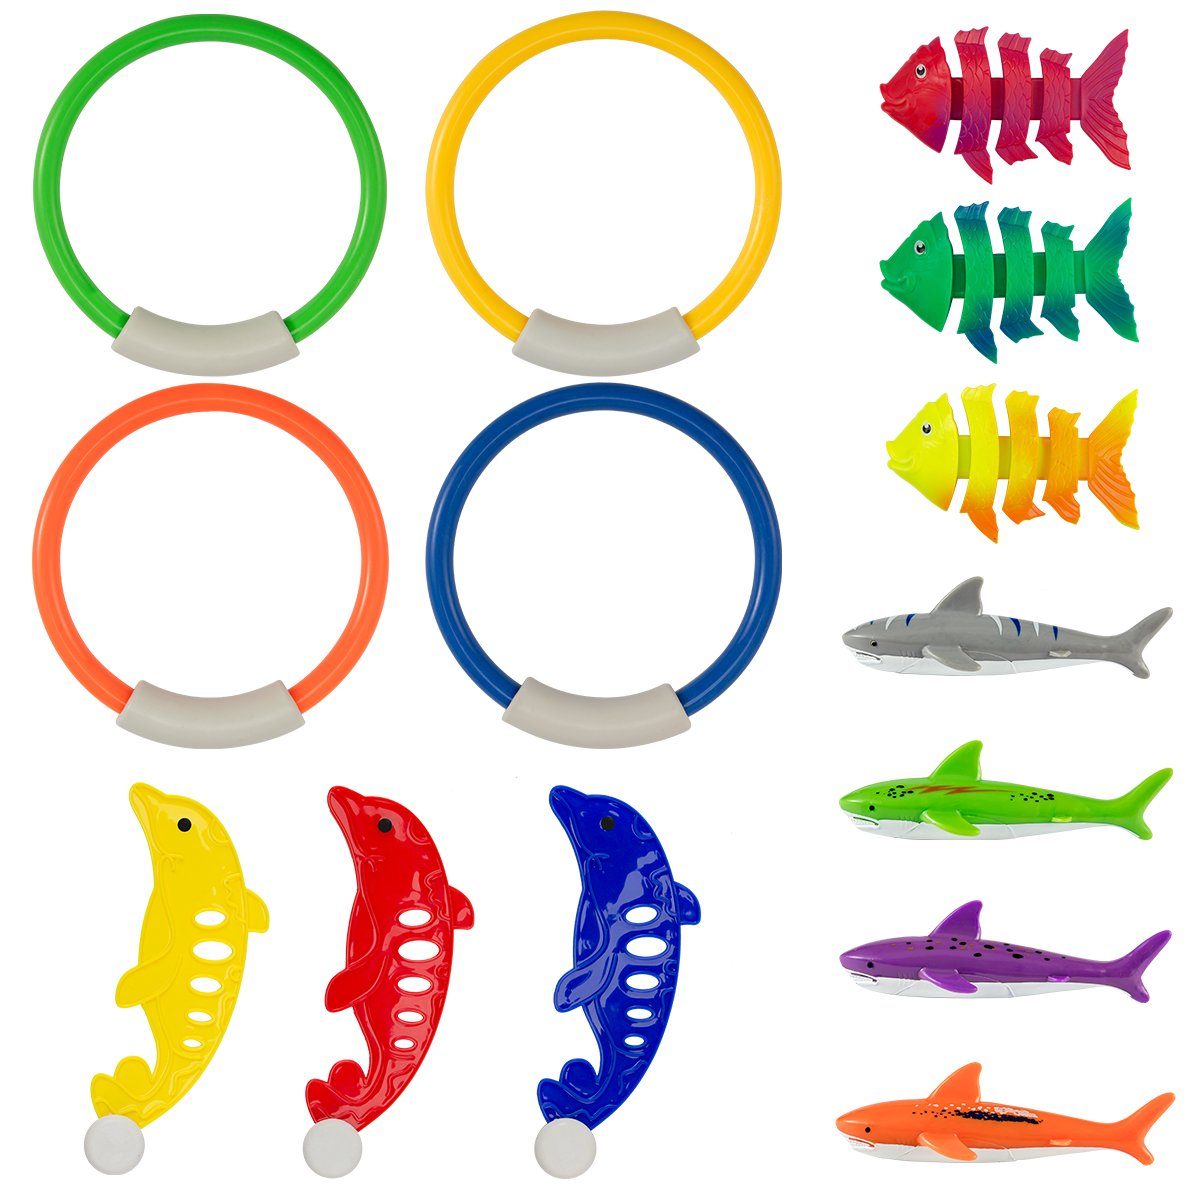 PAMASE Swimming Diving Toys Pool Fun Rings for Kids - Pool Diving Game Toys Set in Total 14 Pcs Including 4 Diving Rings, 4 Diving Shark Toys, 3 Tropical Fish Toys and 3 Dolphin Toys by PAMASE